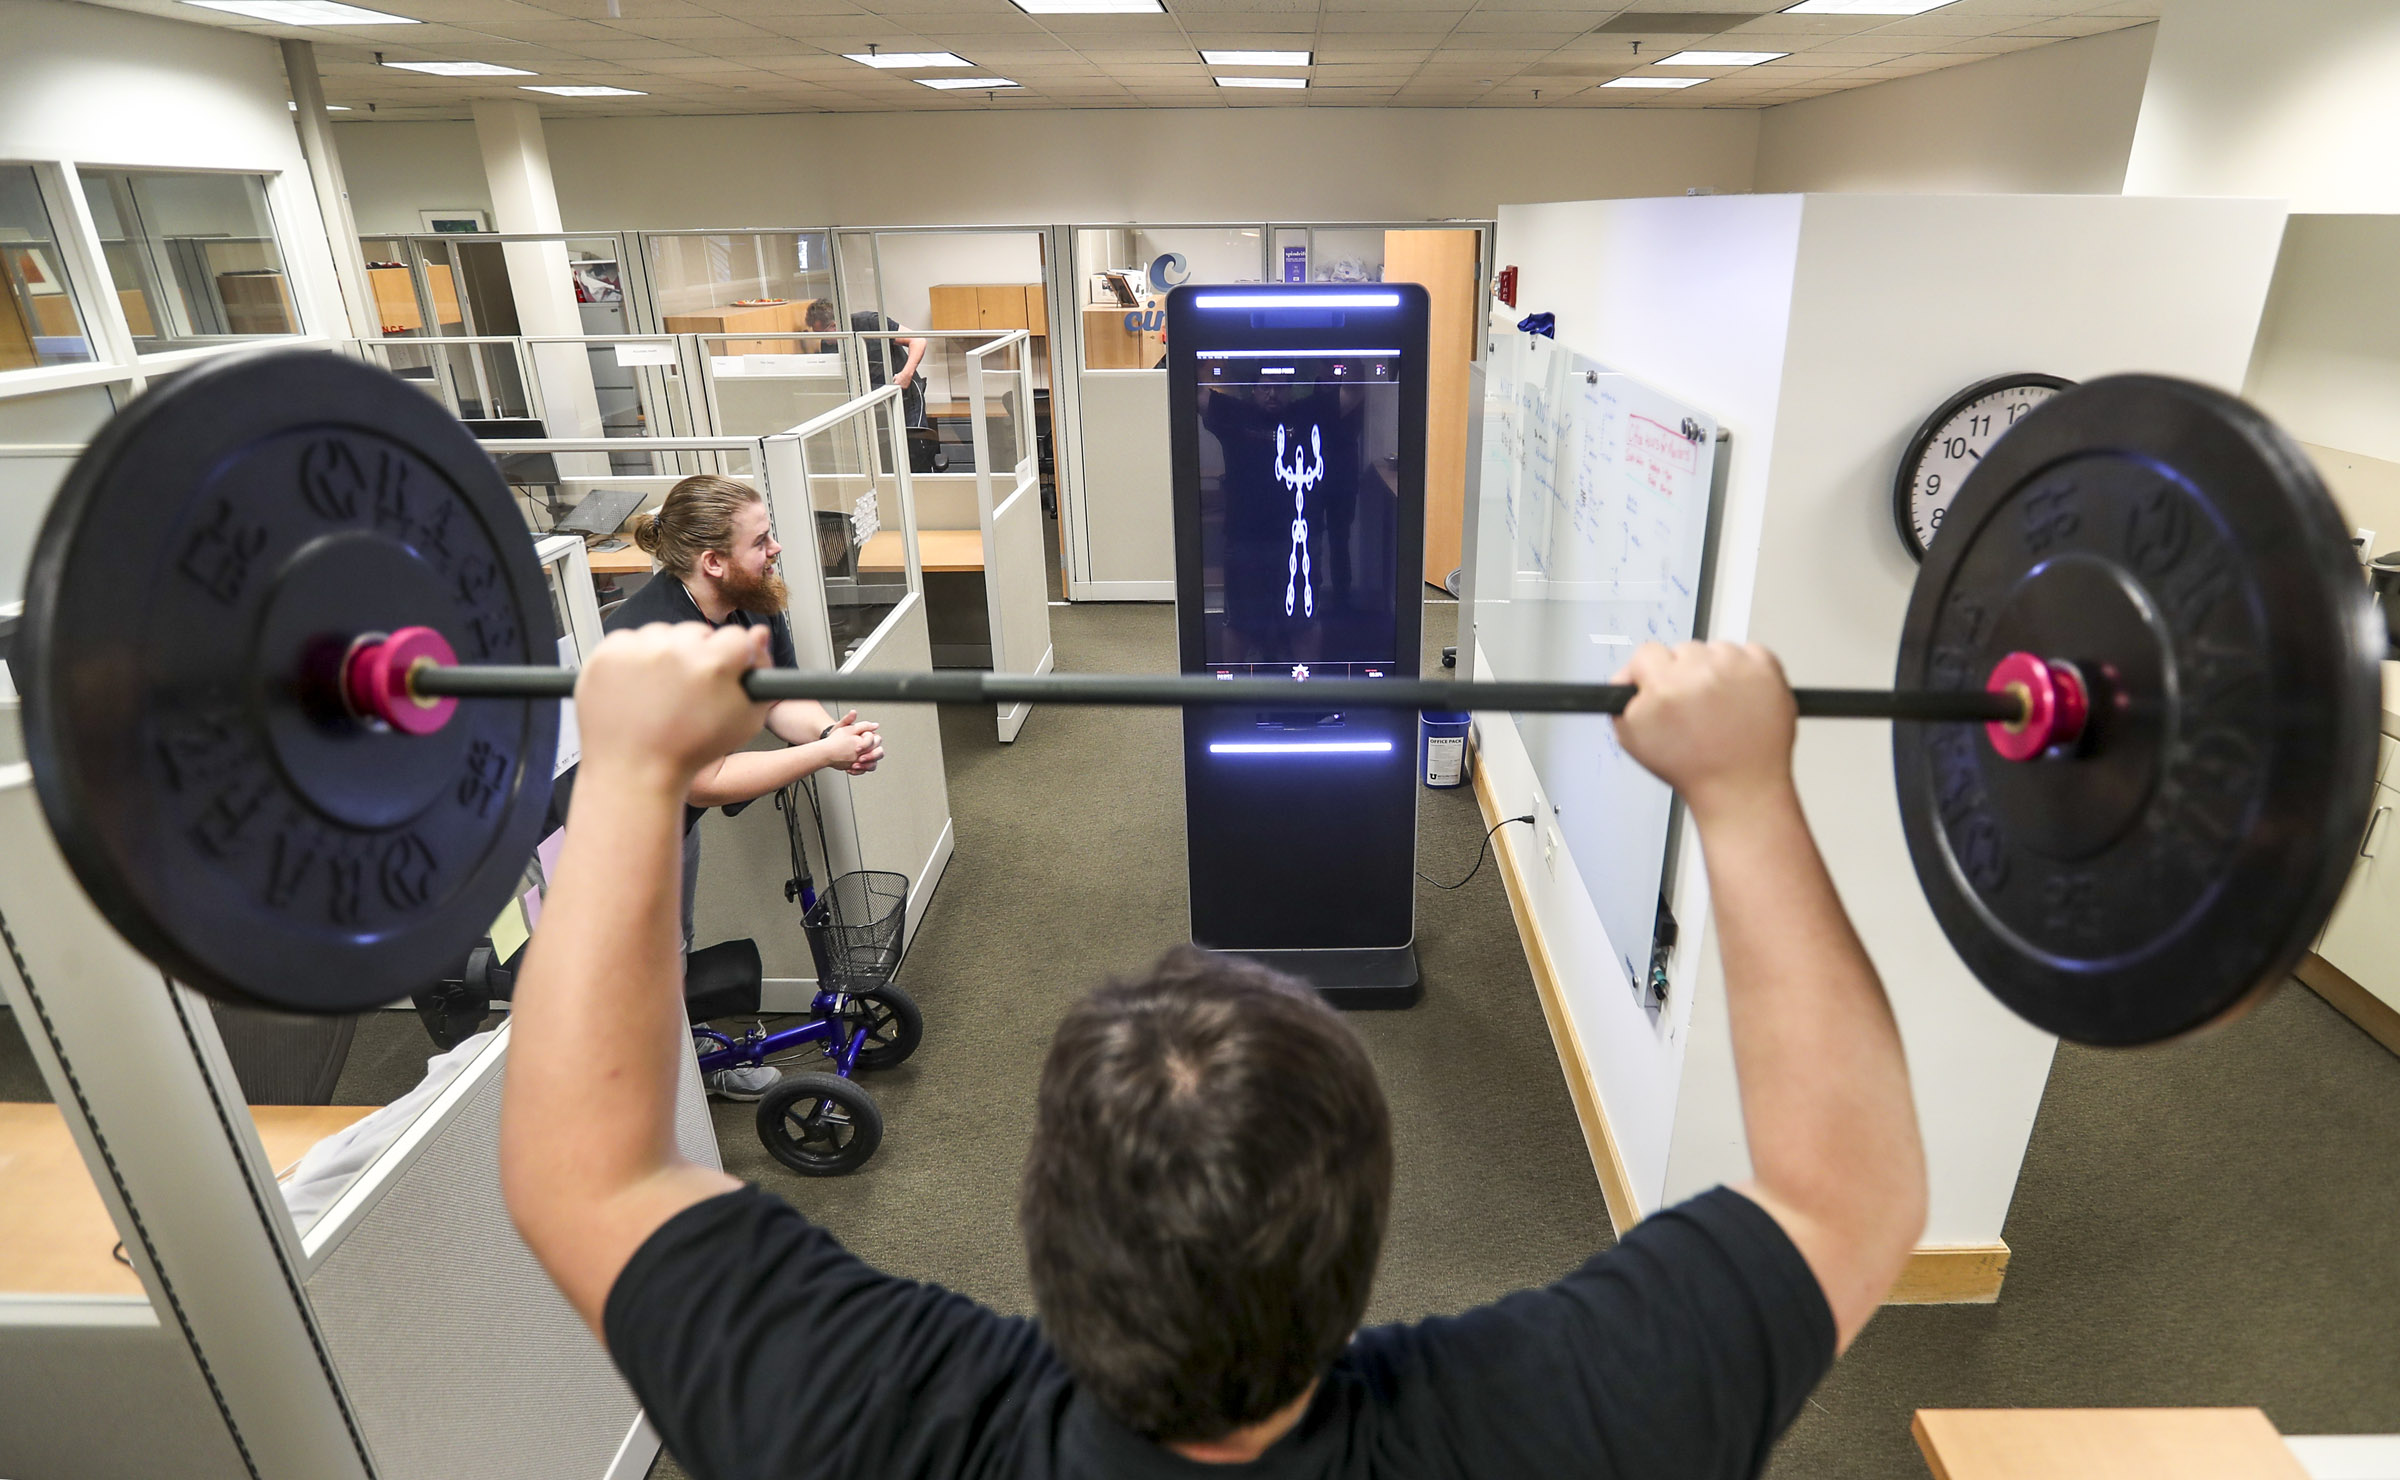 """True Adherence co-founder Chris Bright, front, performs a standing press in front of the company's smart workout system as co-founder Kyle Poulin watches his form during a demonstration at the University of Utah in Salt Lake City on Thursday, Feb. 13, 2020. The system features video cameras and software processing that acts as a fitness """"coach,"""" correcting for form and function."""